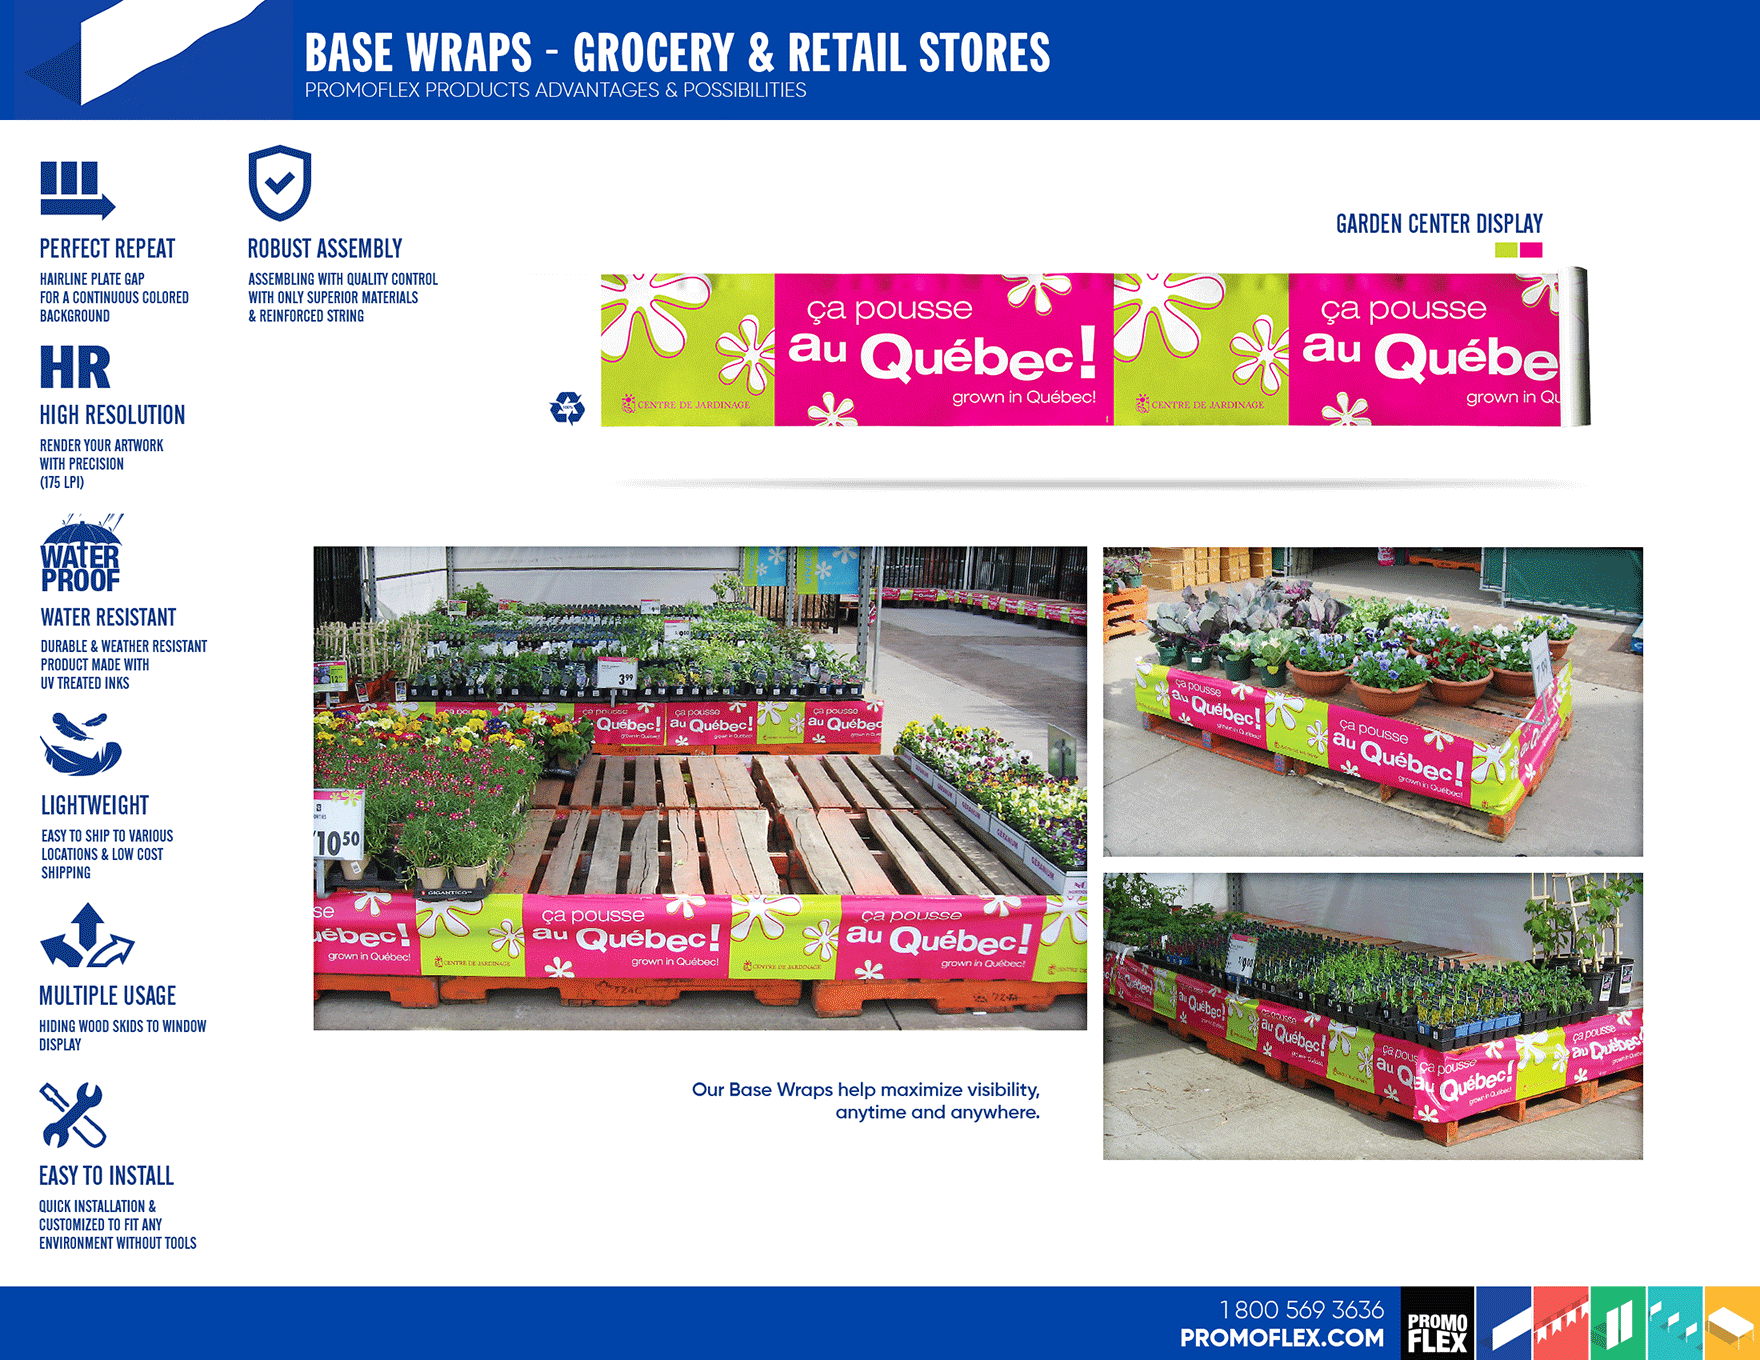 base-wraps-grocery-retail-stores-en-1.png (548 KB)